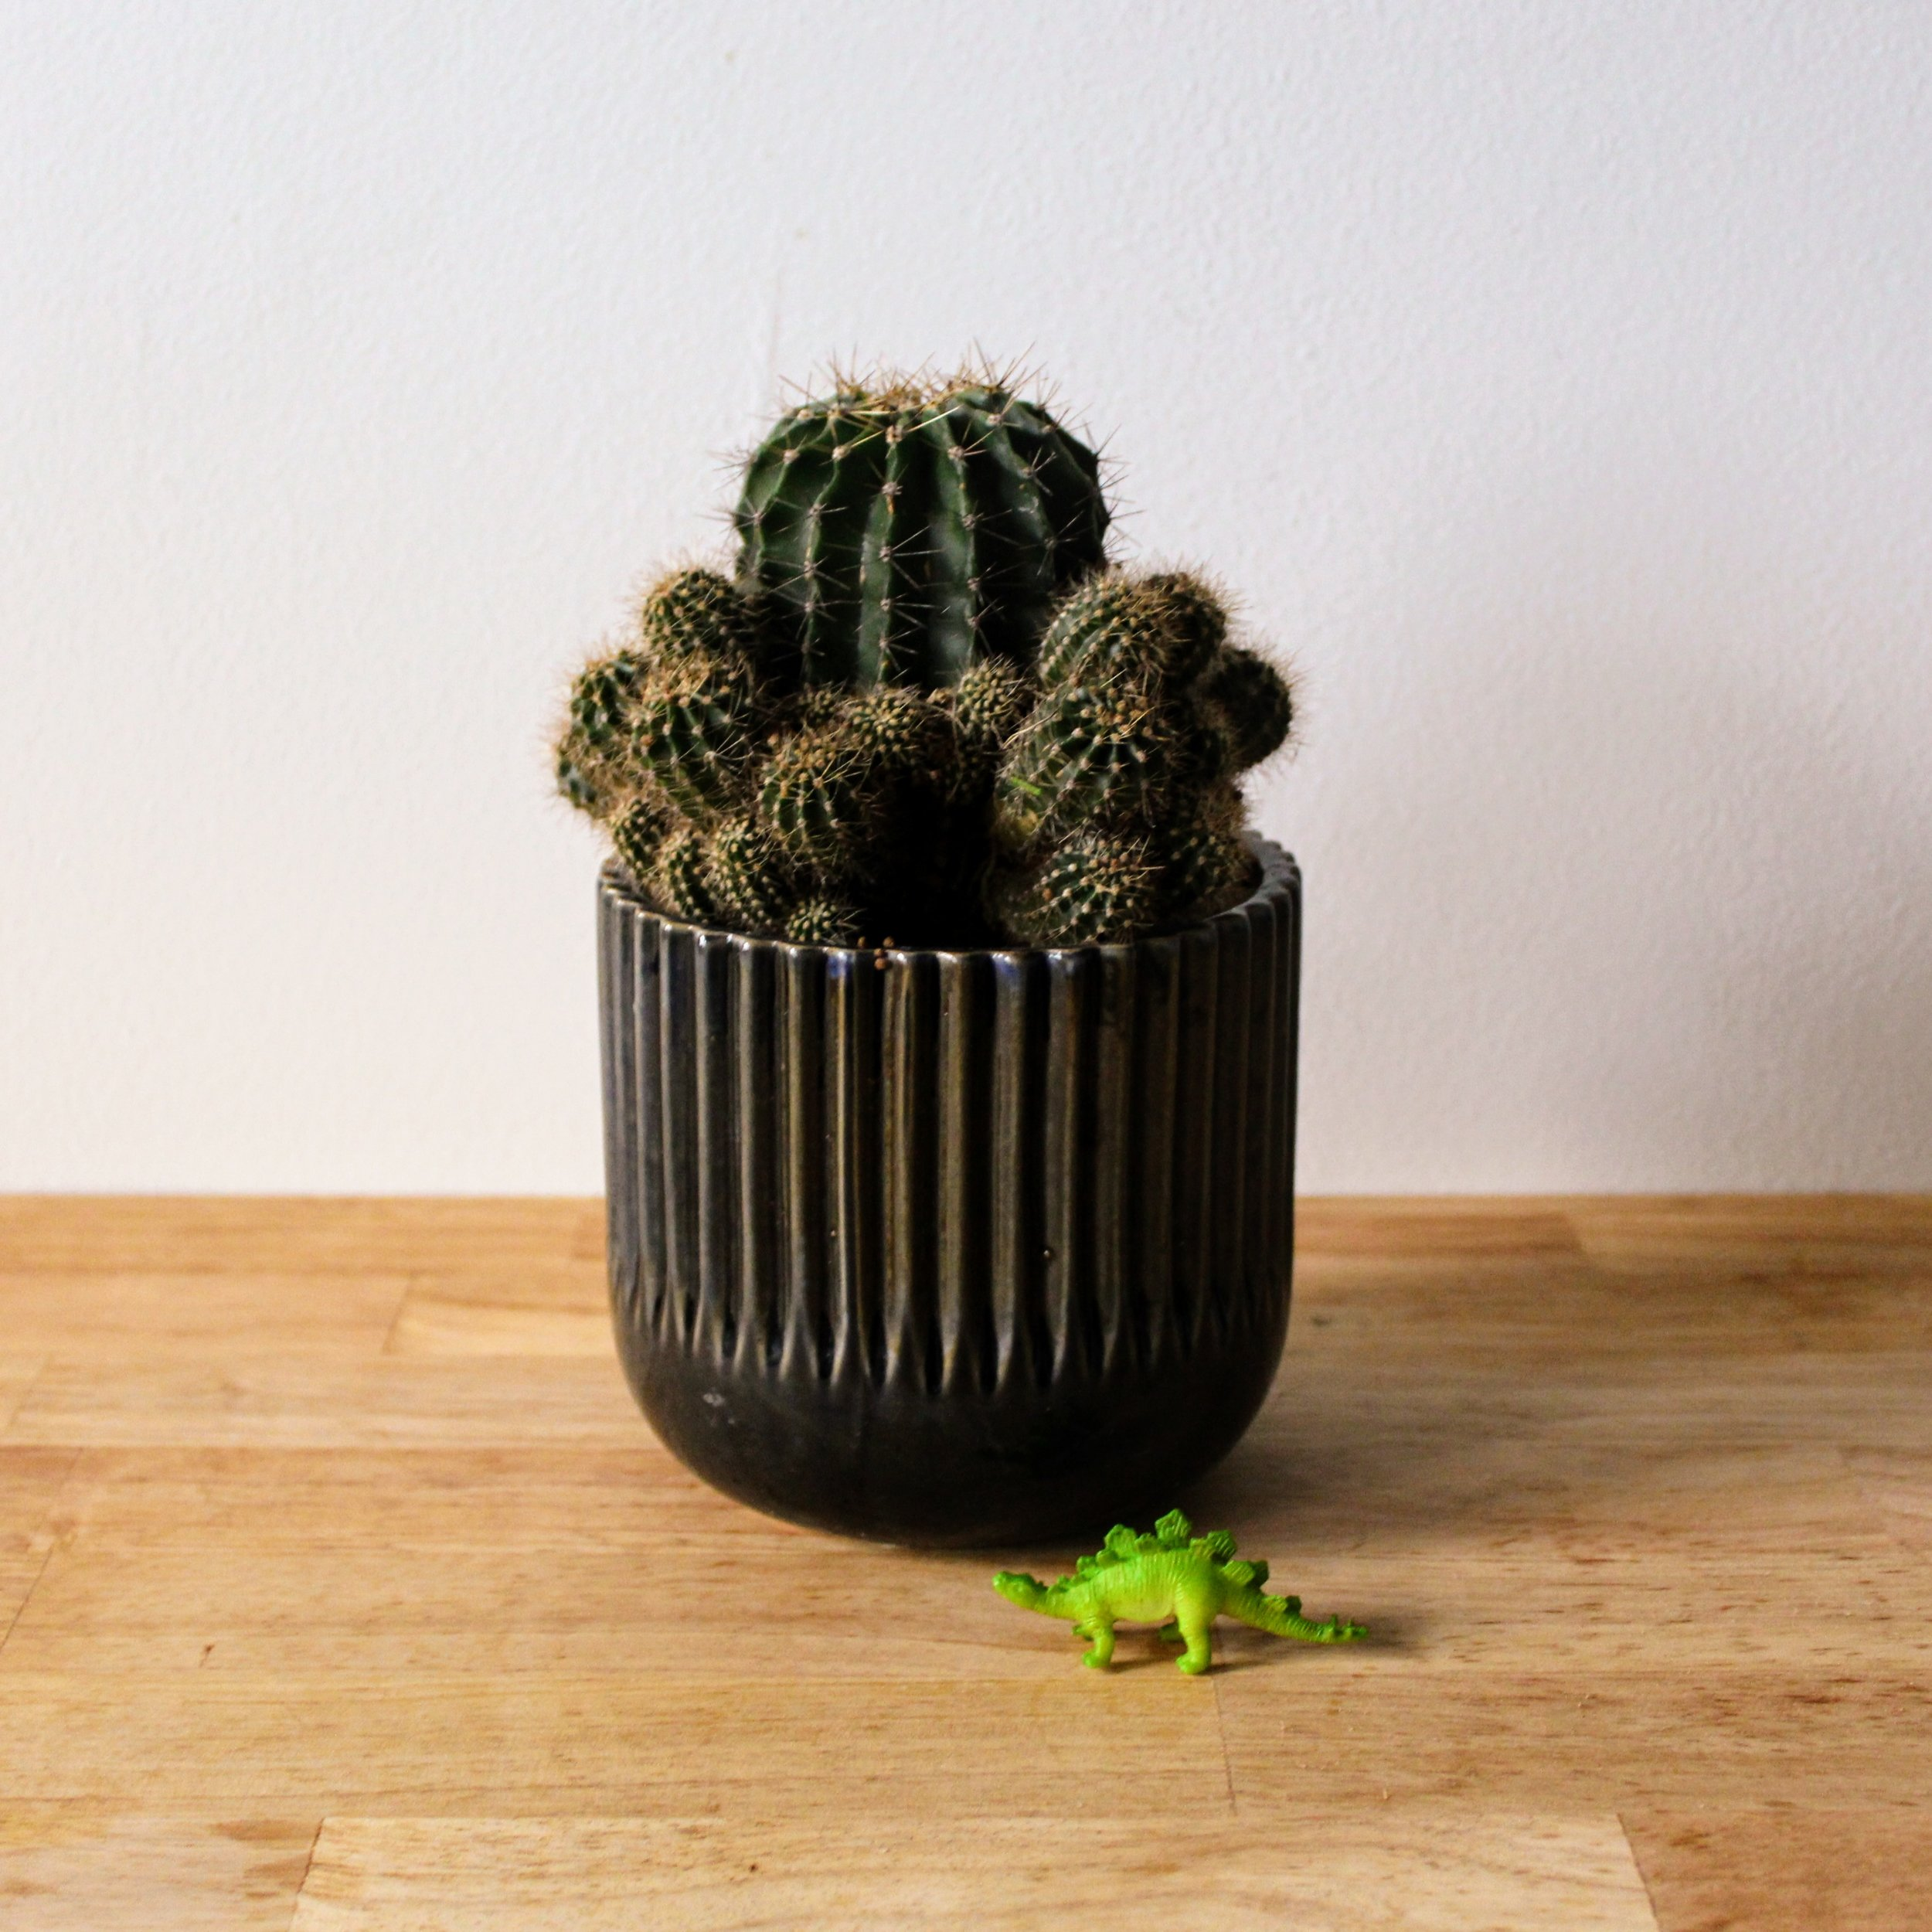 potted plant1.jpg